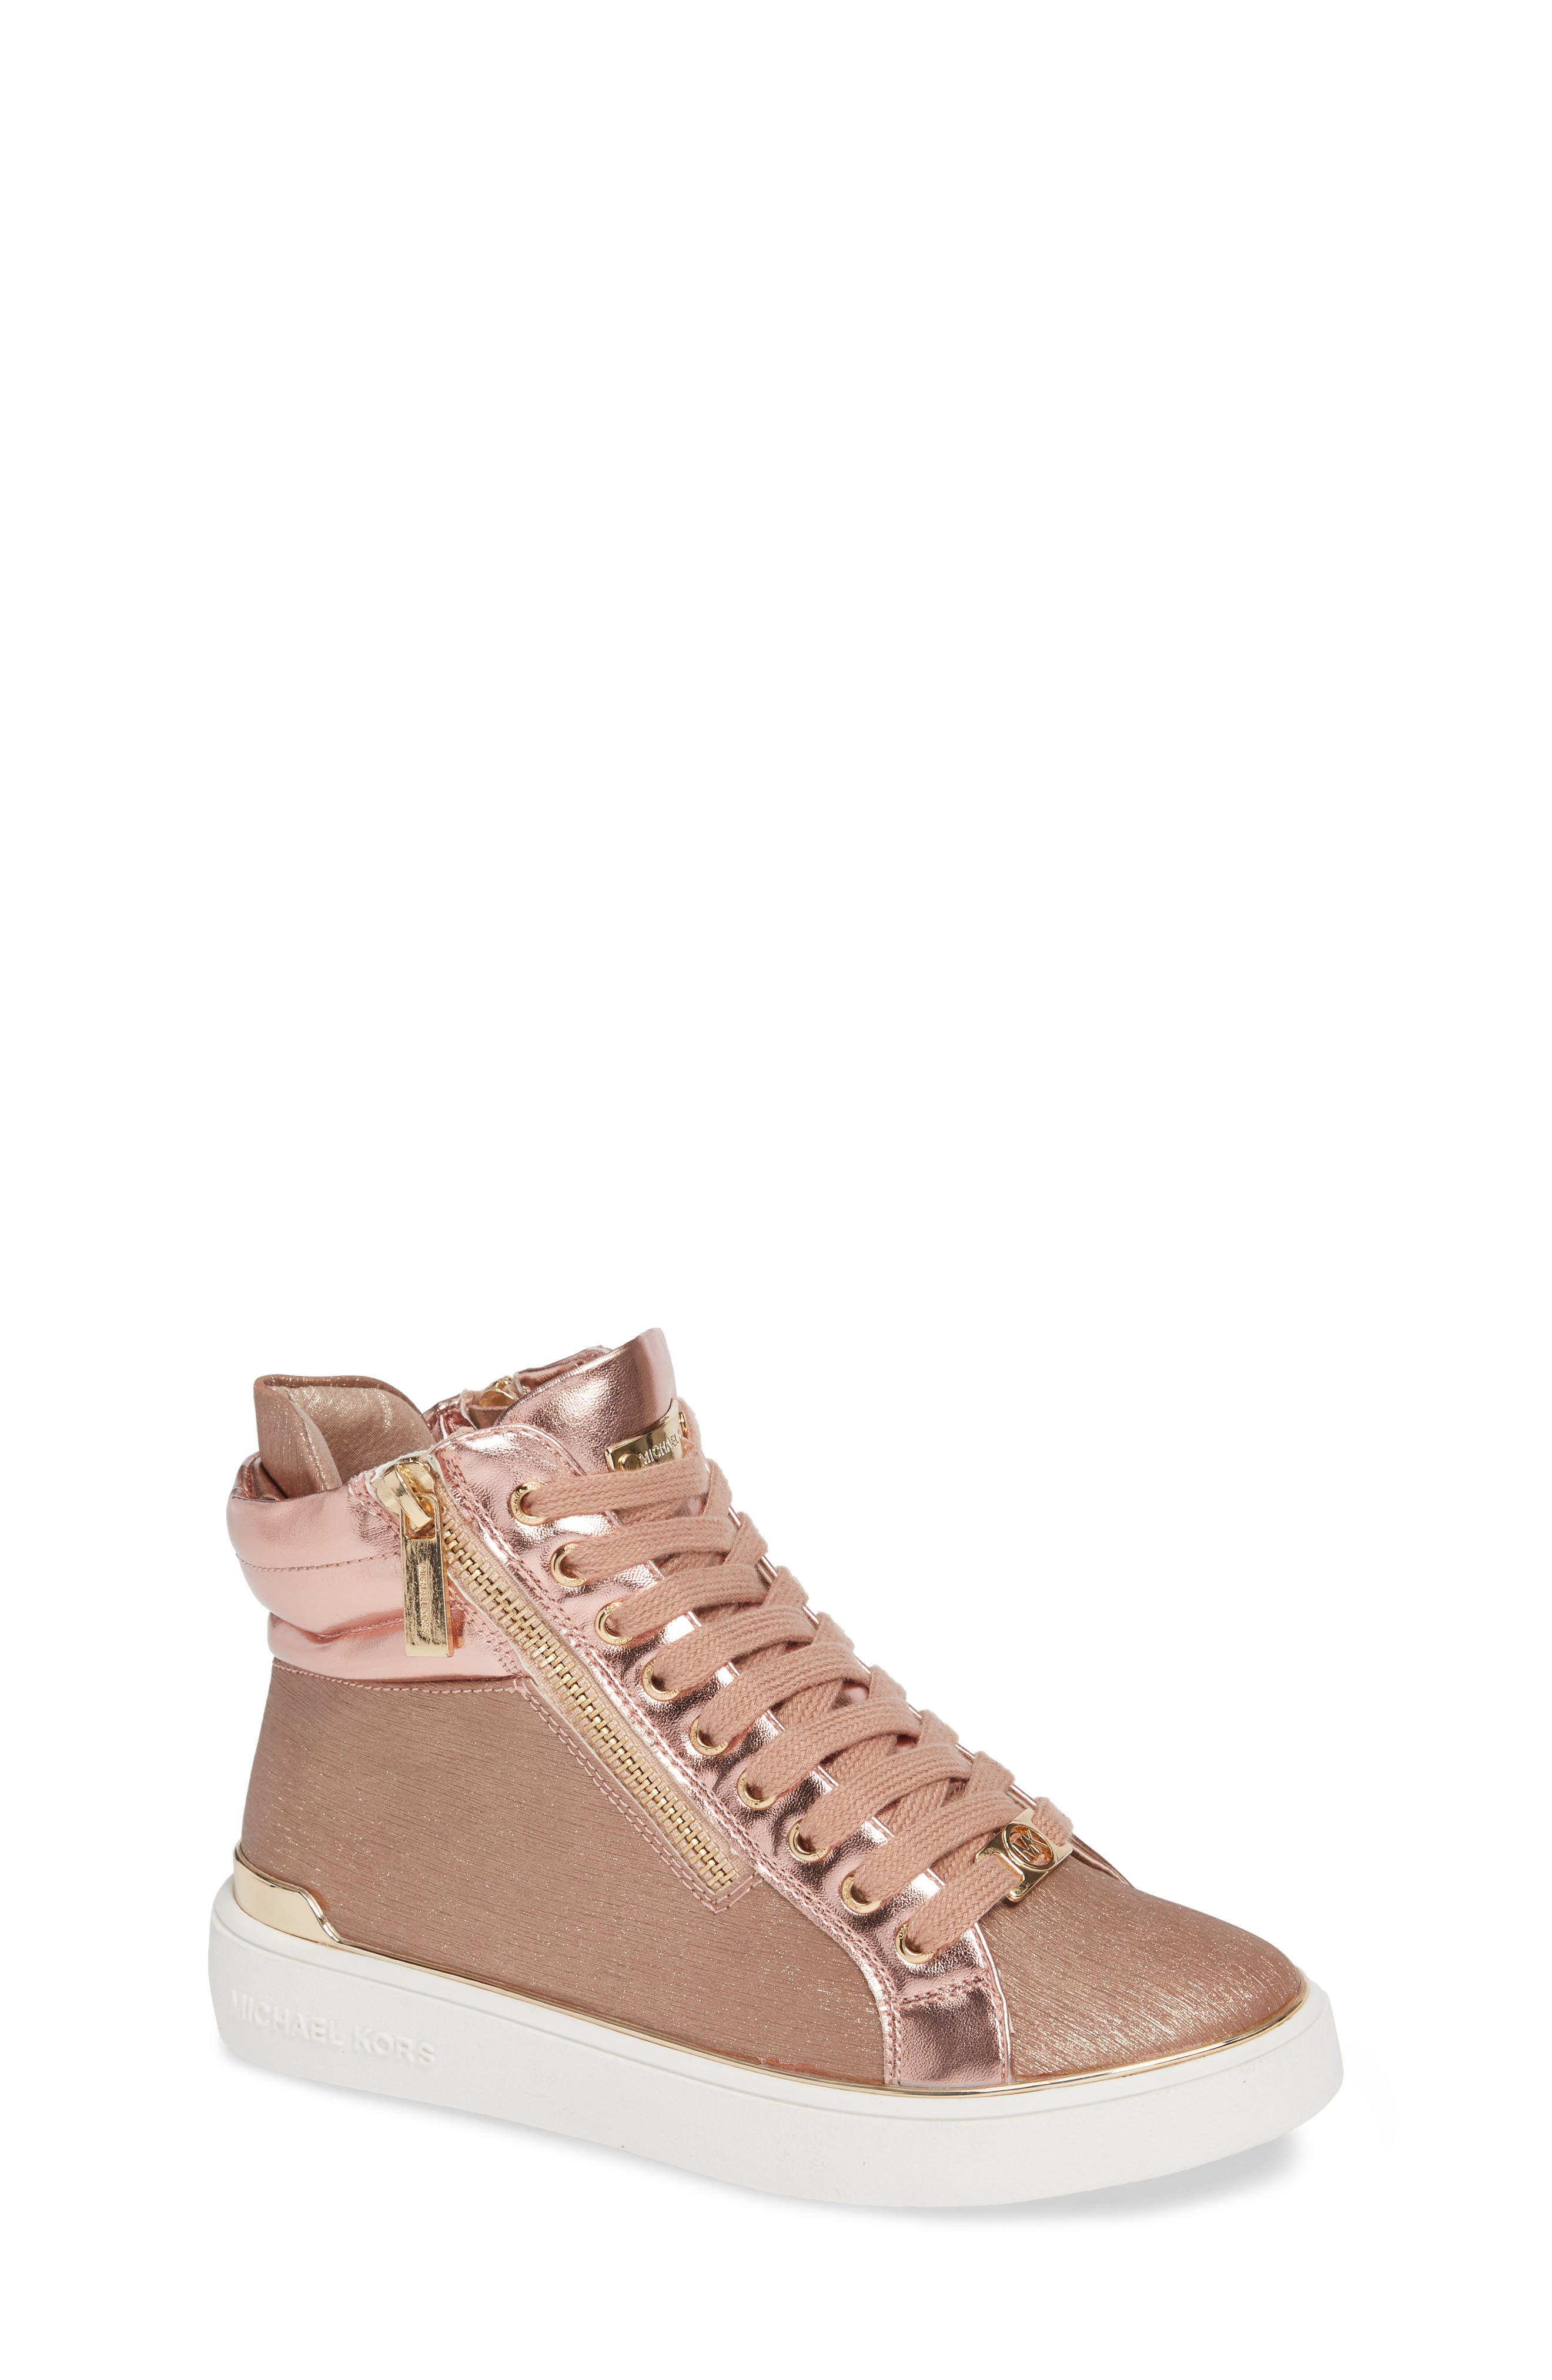 High Top Sneaker,                             Main thumbnail 1, color,                             ROSE GOLD